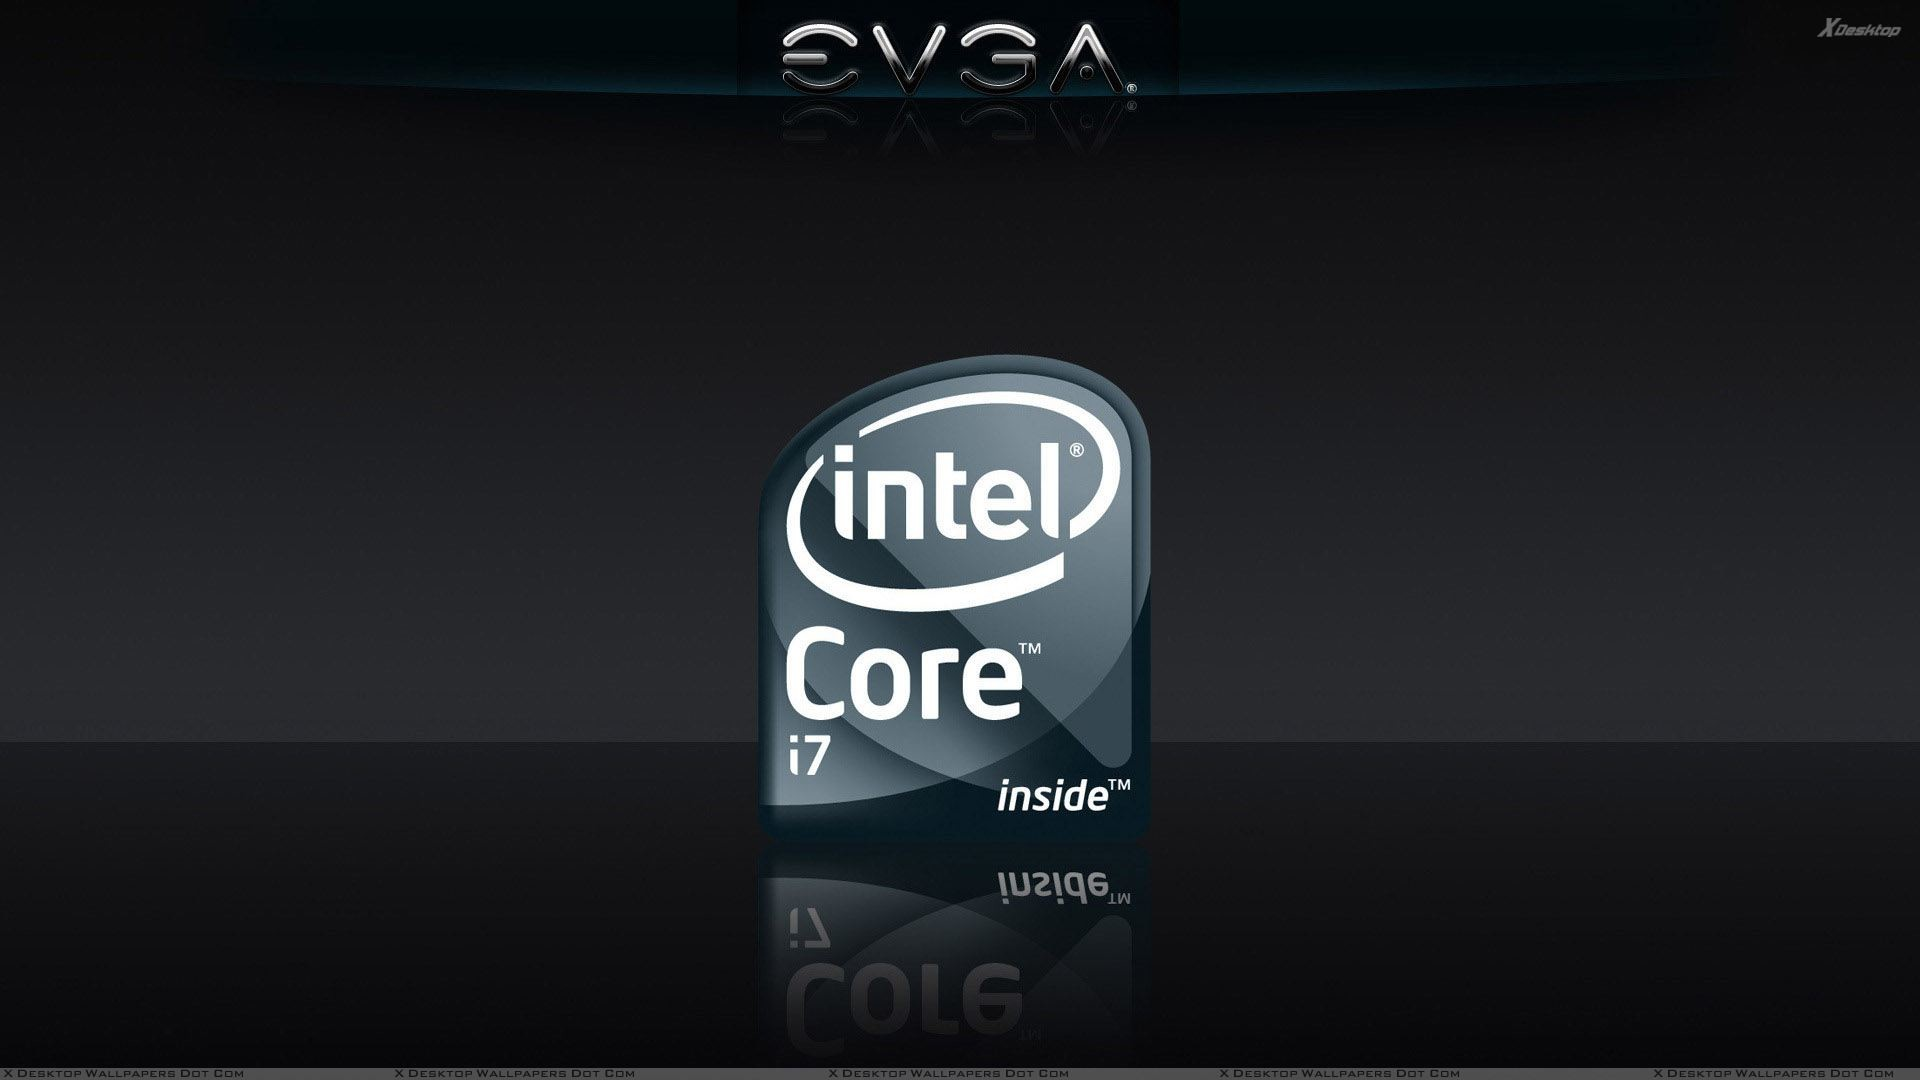 """You are viewing wallpaper titled """"EVGA …"""